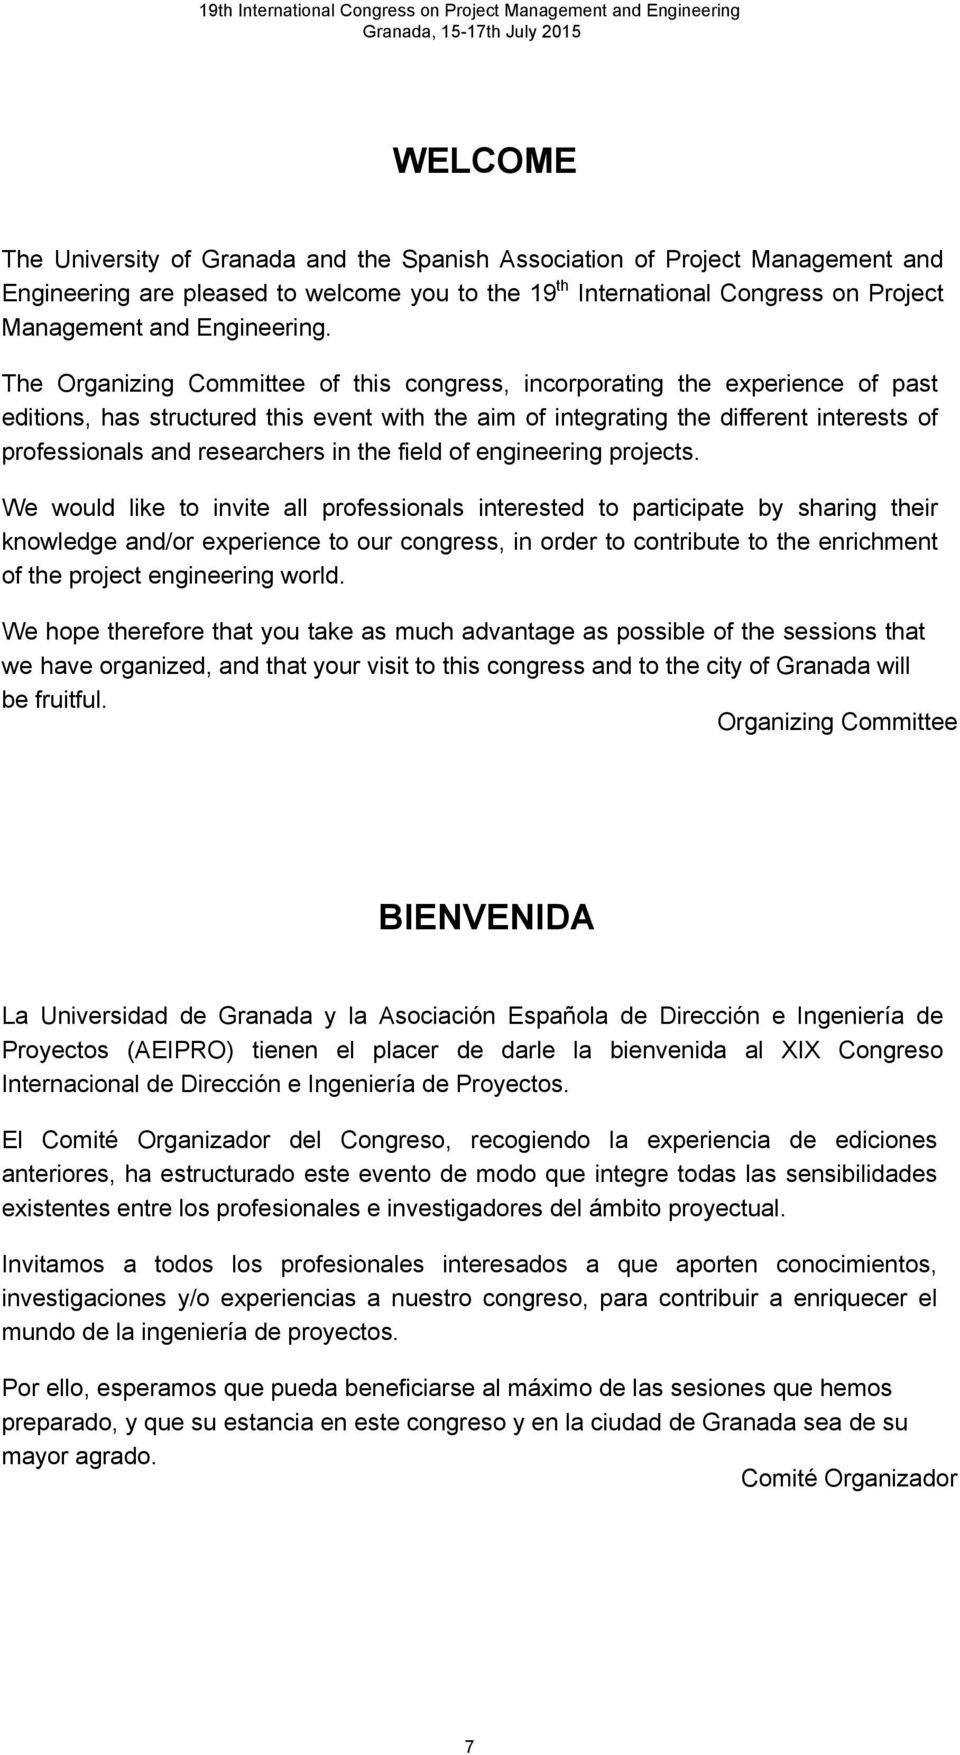 The Organizing Committee of this congress, incorporating the experience of past editions, has structured this event with the aim of integrating the different interests of professionals and